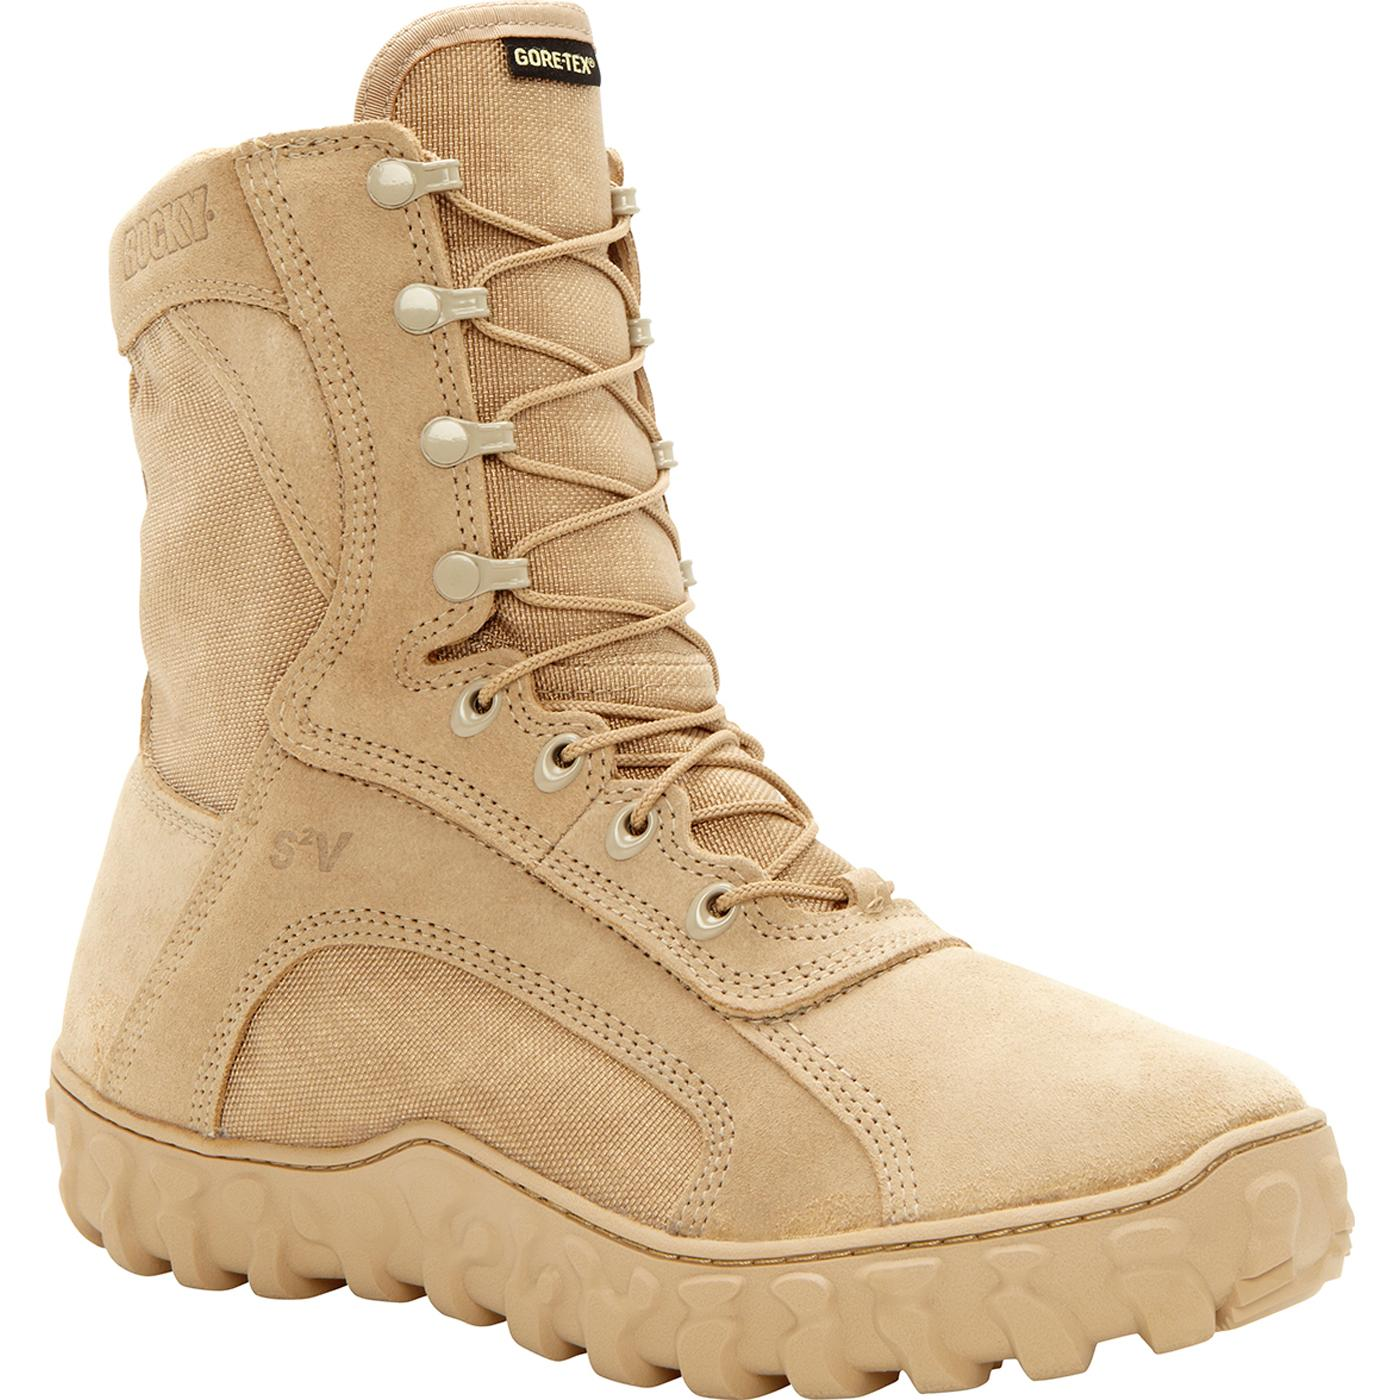 afc09496036 Rocky S2V Waterproof 400G Insulated Tactical Military Boot